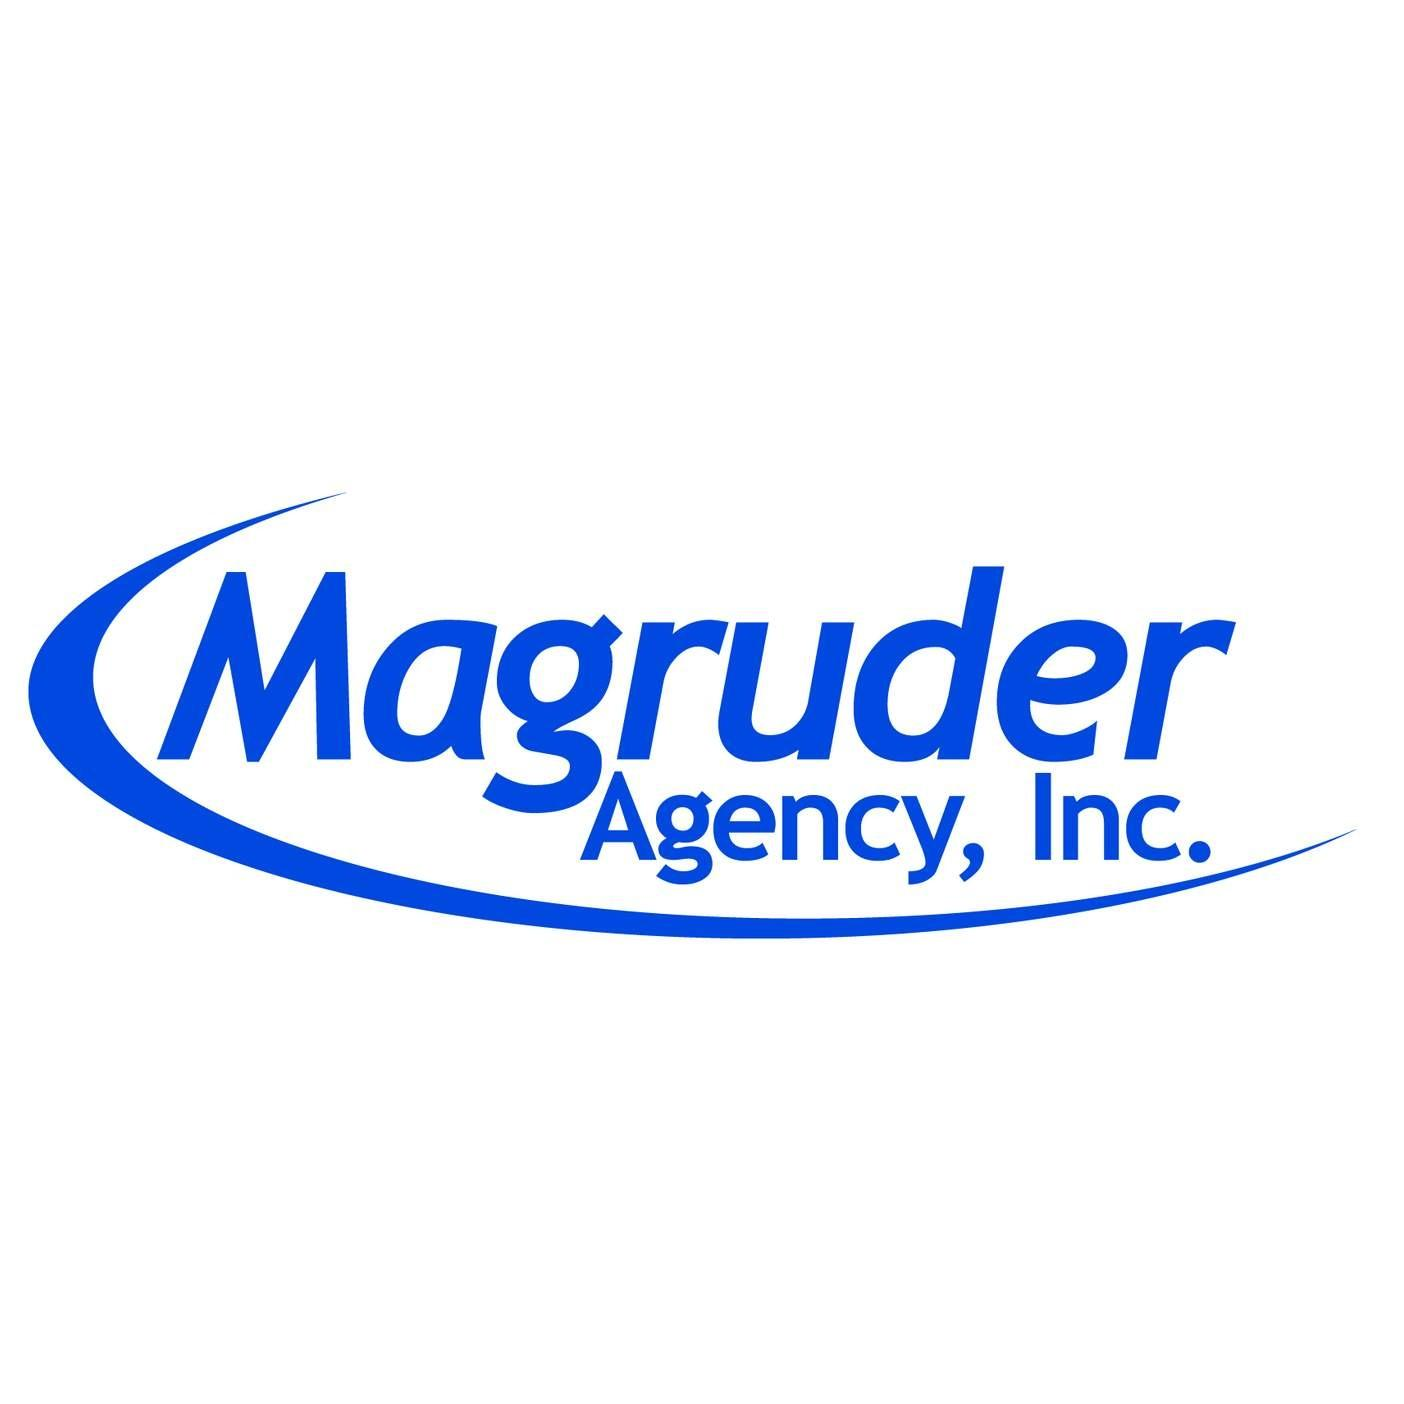 Magruder Agency, Inc. image 0